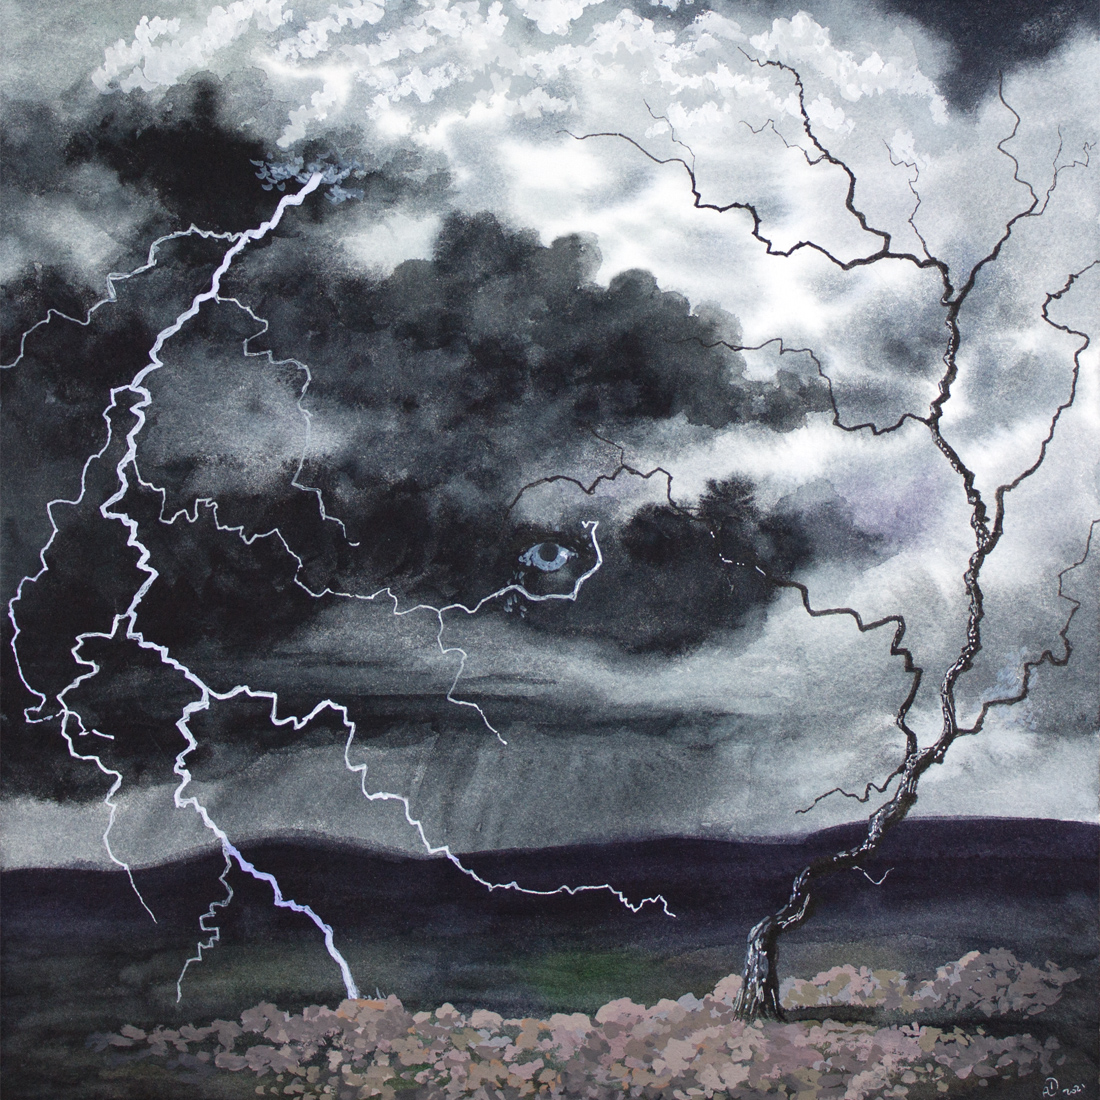 watercolor, gouache, ink, painting, drawing, storm, clouds, sky